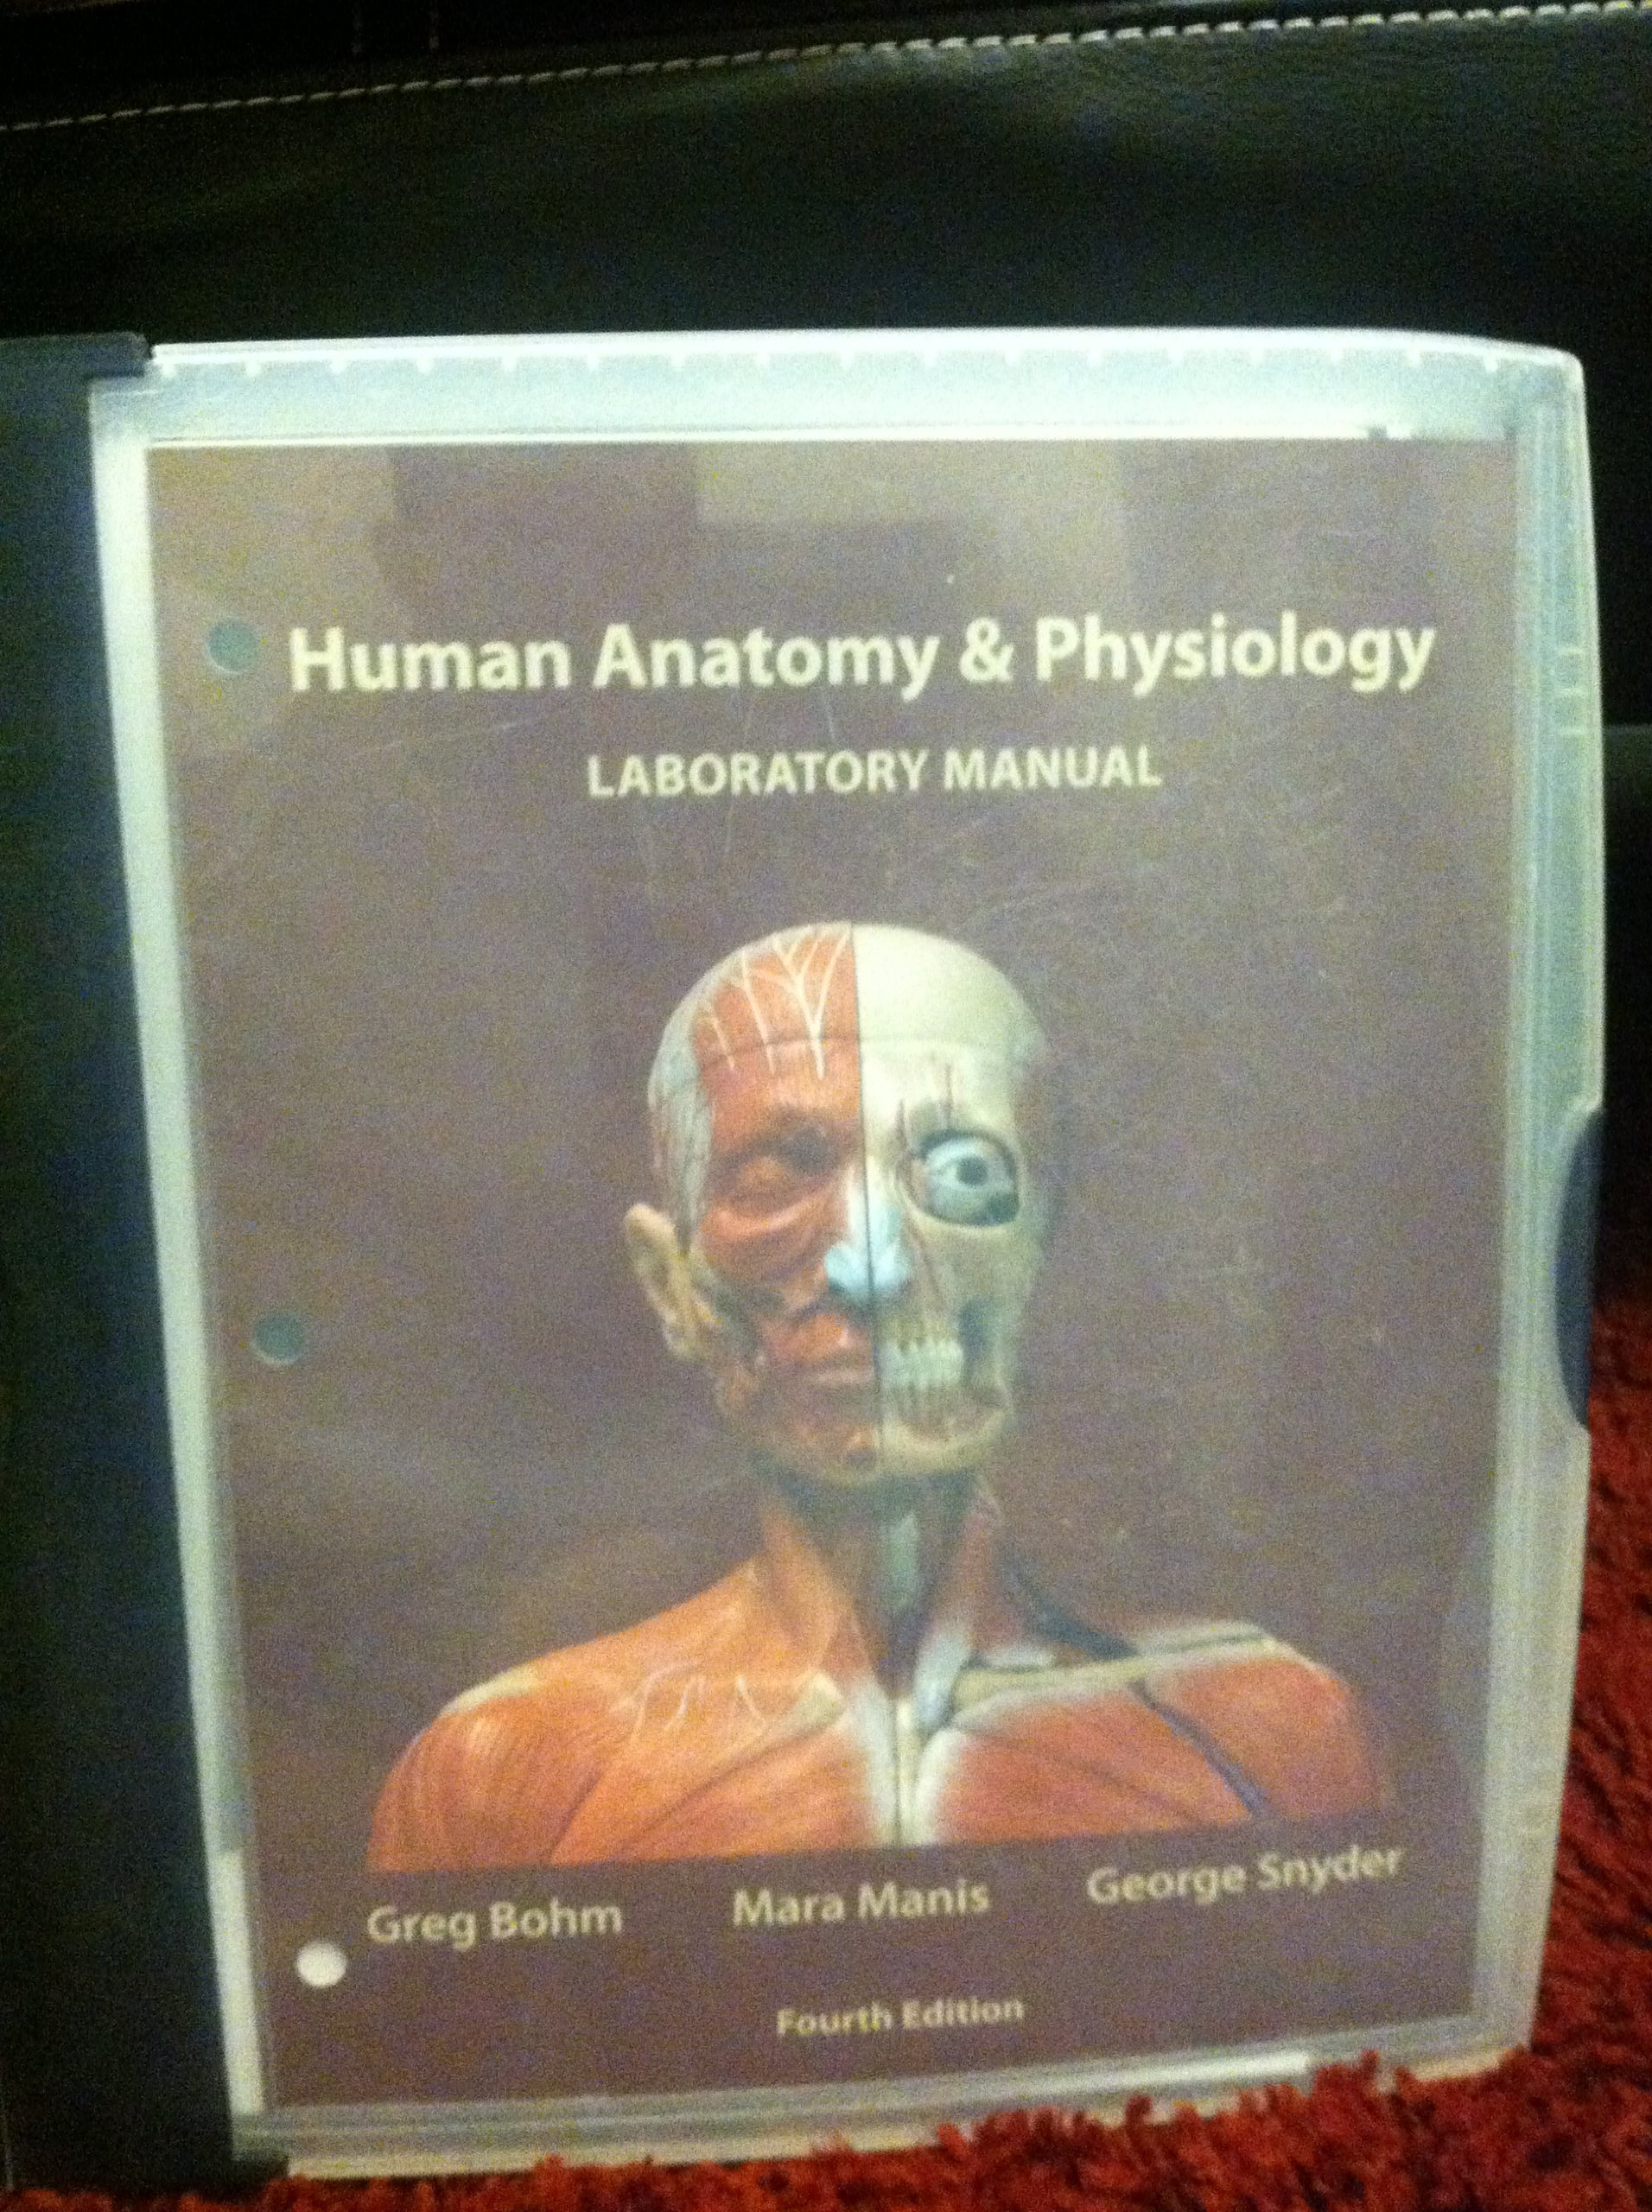 Wrg 2562 Human Anatomy Lab Manual 6th Edition 2019 Ebook Library